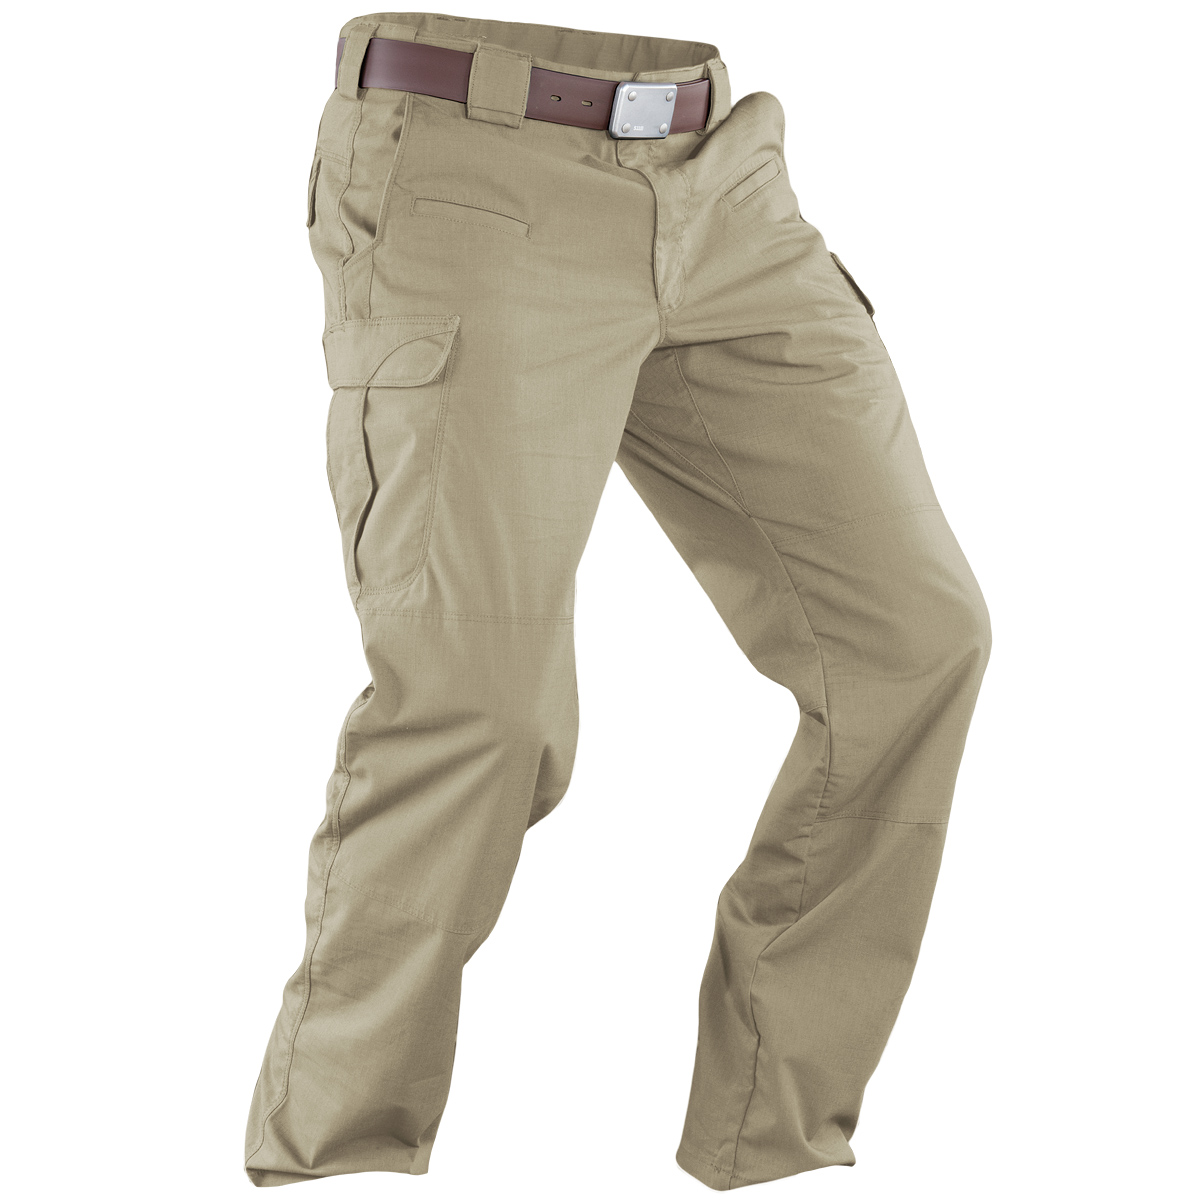 5.11 Tactical Stryke Pants Patrol Combats Army Mens Cargo Trousers ...